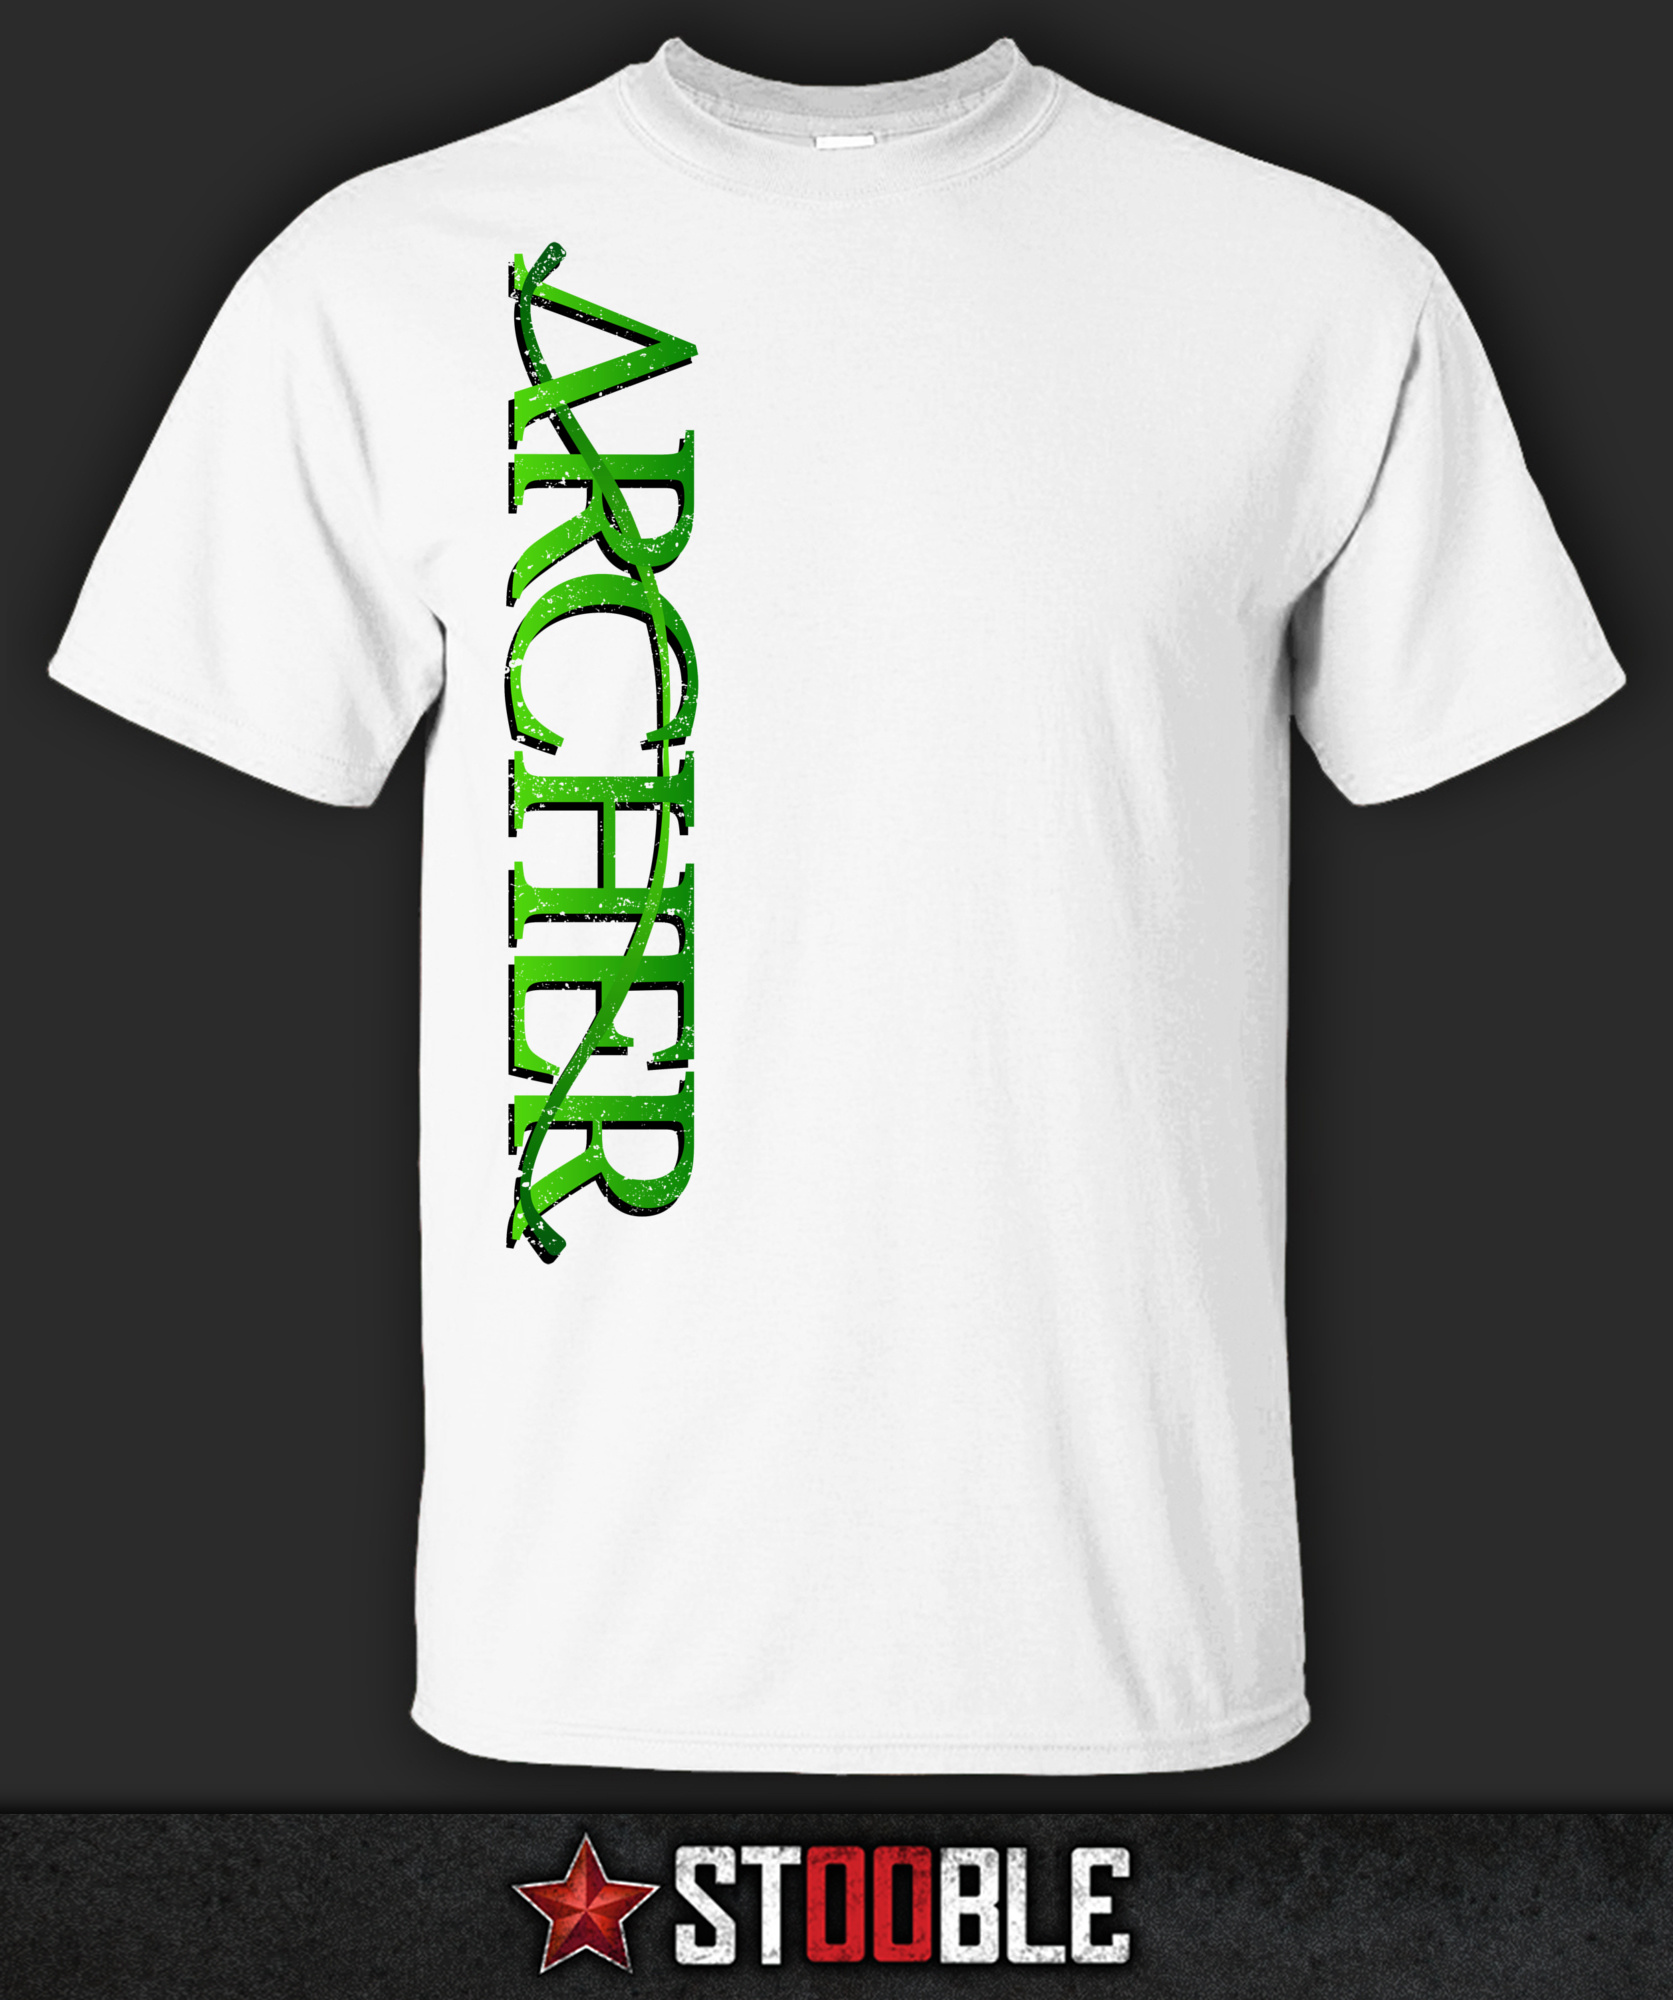 Archery T Shirt Designs